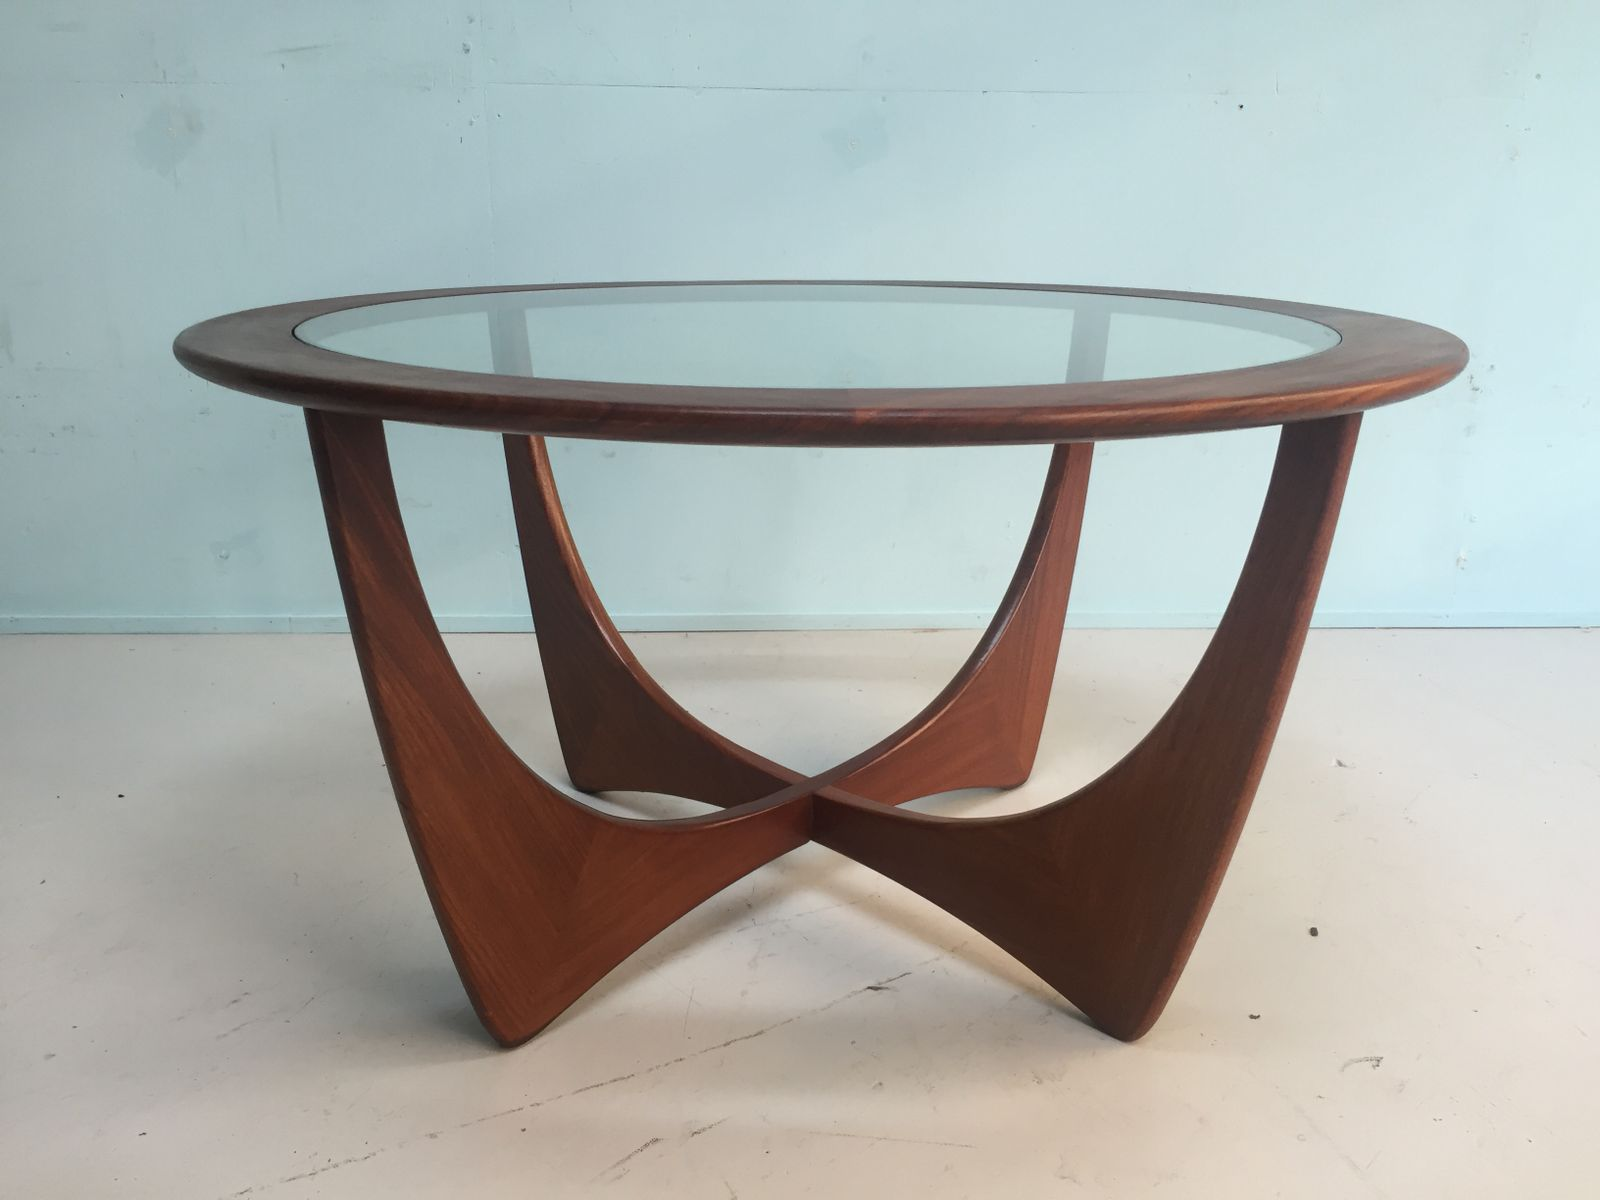 English Solid Teak Coffee Table from G Plan 1960s for sale at Pamono